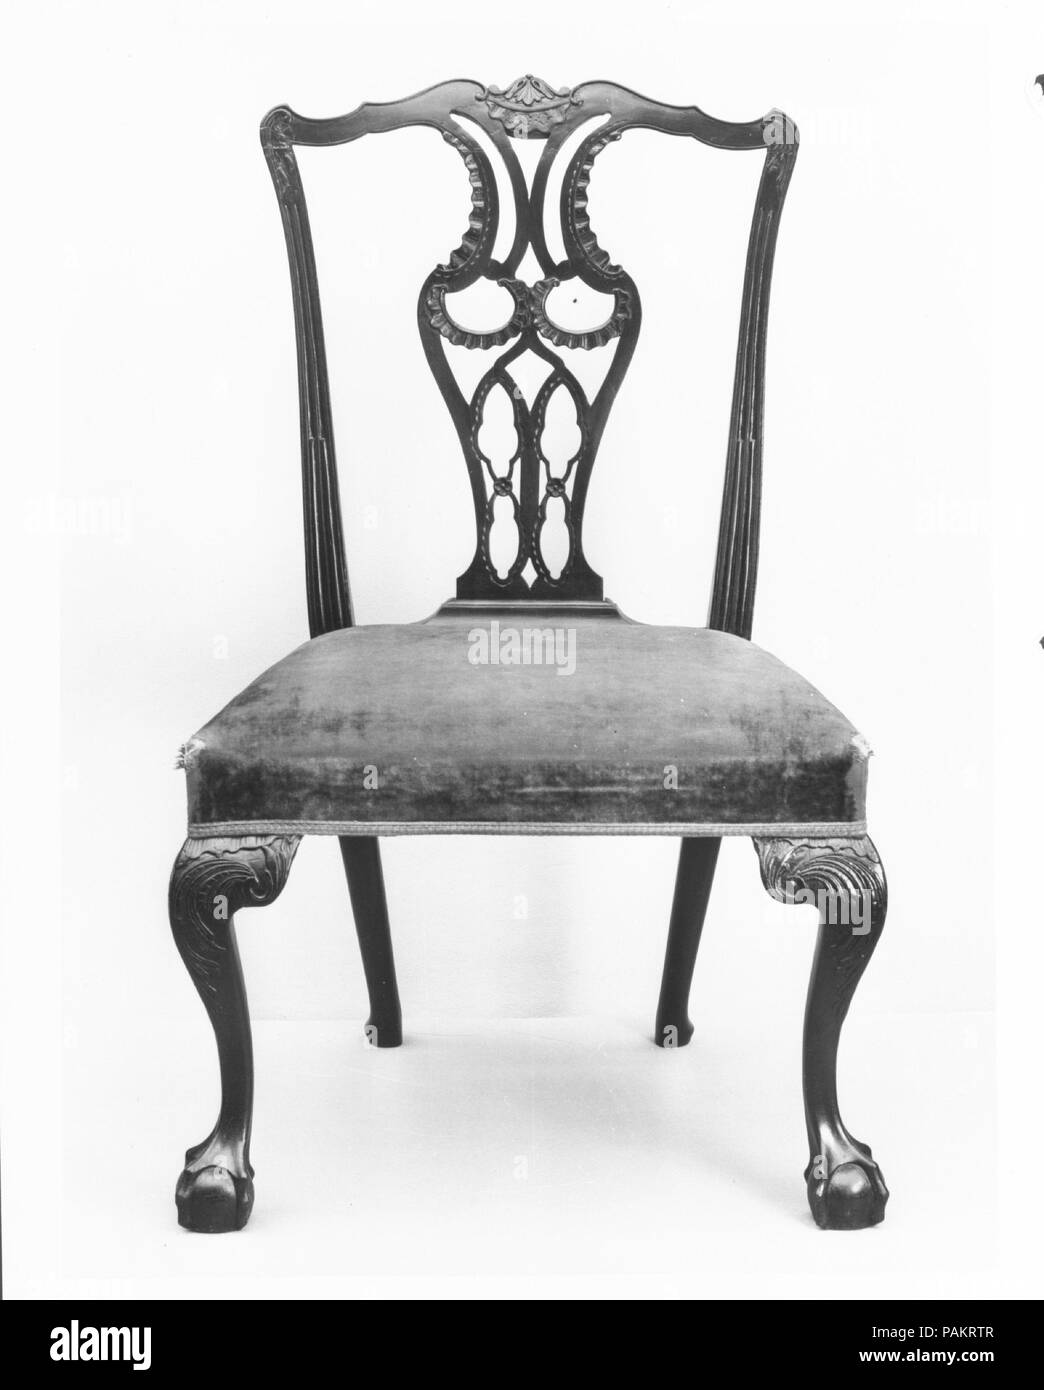 Side Chair. Culture: American. Dimensions: 38 1/2 x 22 1/4 x 22 in. (97.8 x 56.5 x 55.9 cm). Date: 1770-90. Museum: Metropolitan Museum of Art, New York, USA. - Stock Image